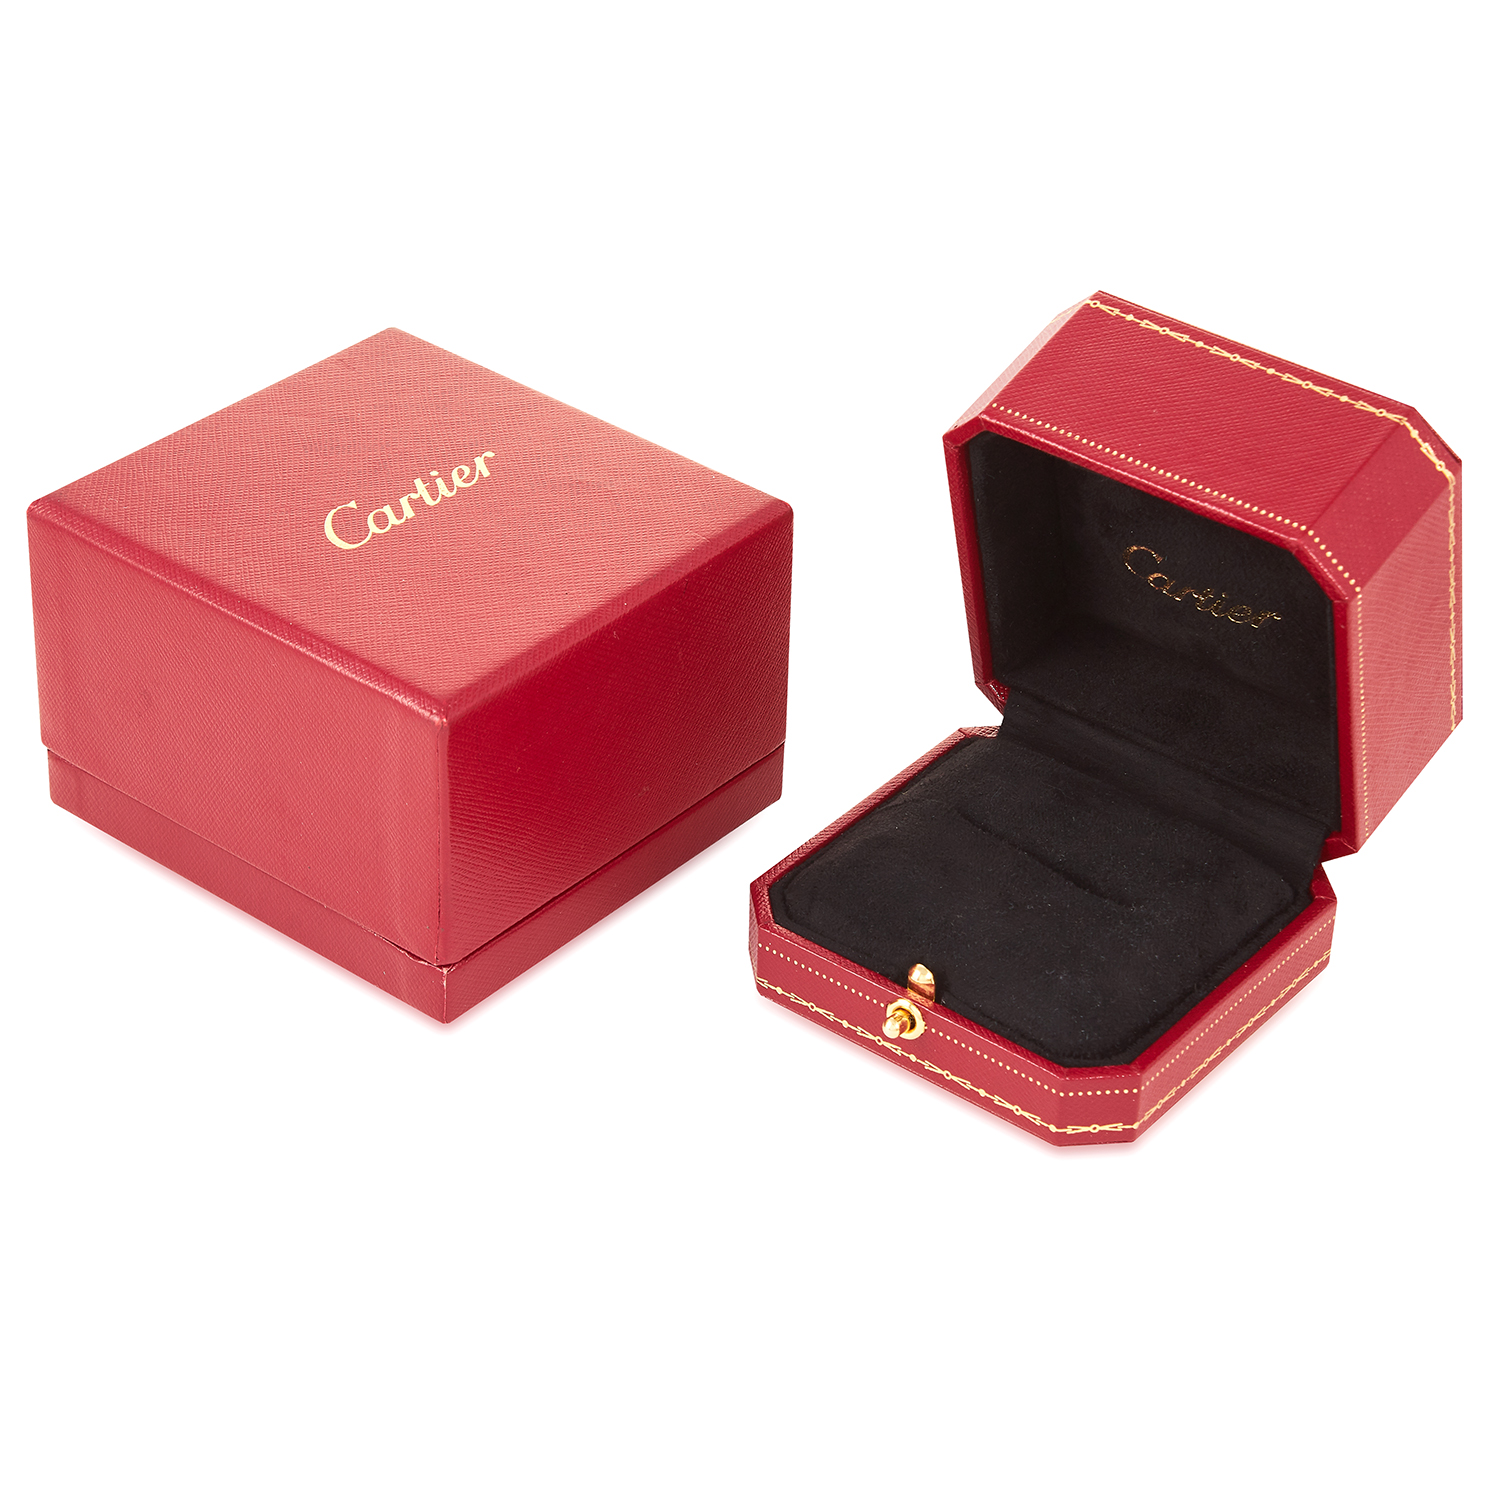 Los 192 - A CARTIER LARGE RING / JEWELLERY BOX